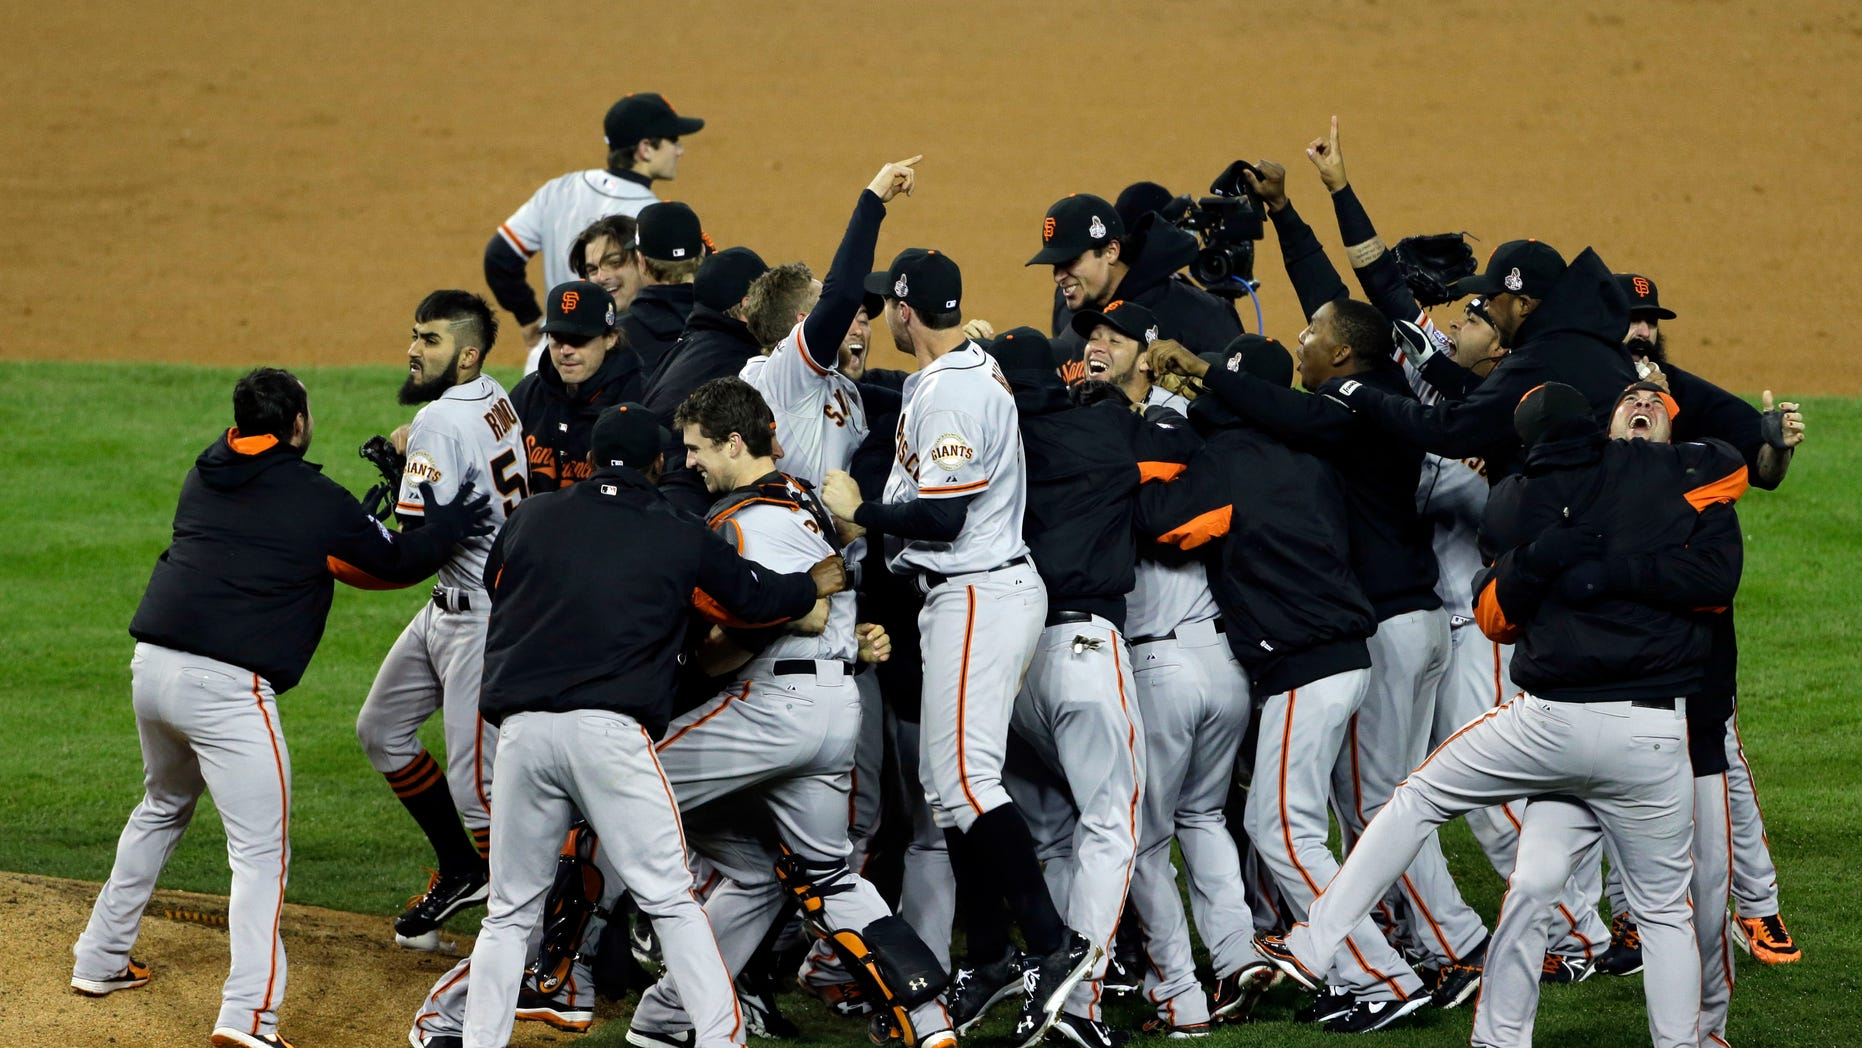 Oct. 28, 2012: San Francisco Giants celebrate after winning Game 4 of baseball's World Series against the Detroit Tigers.